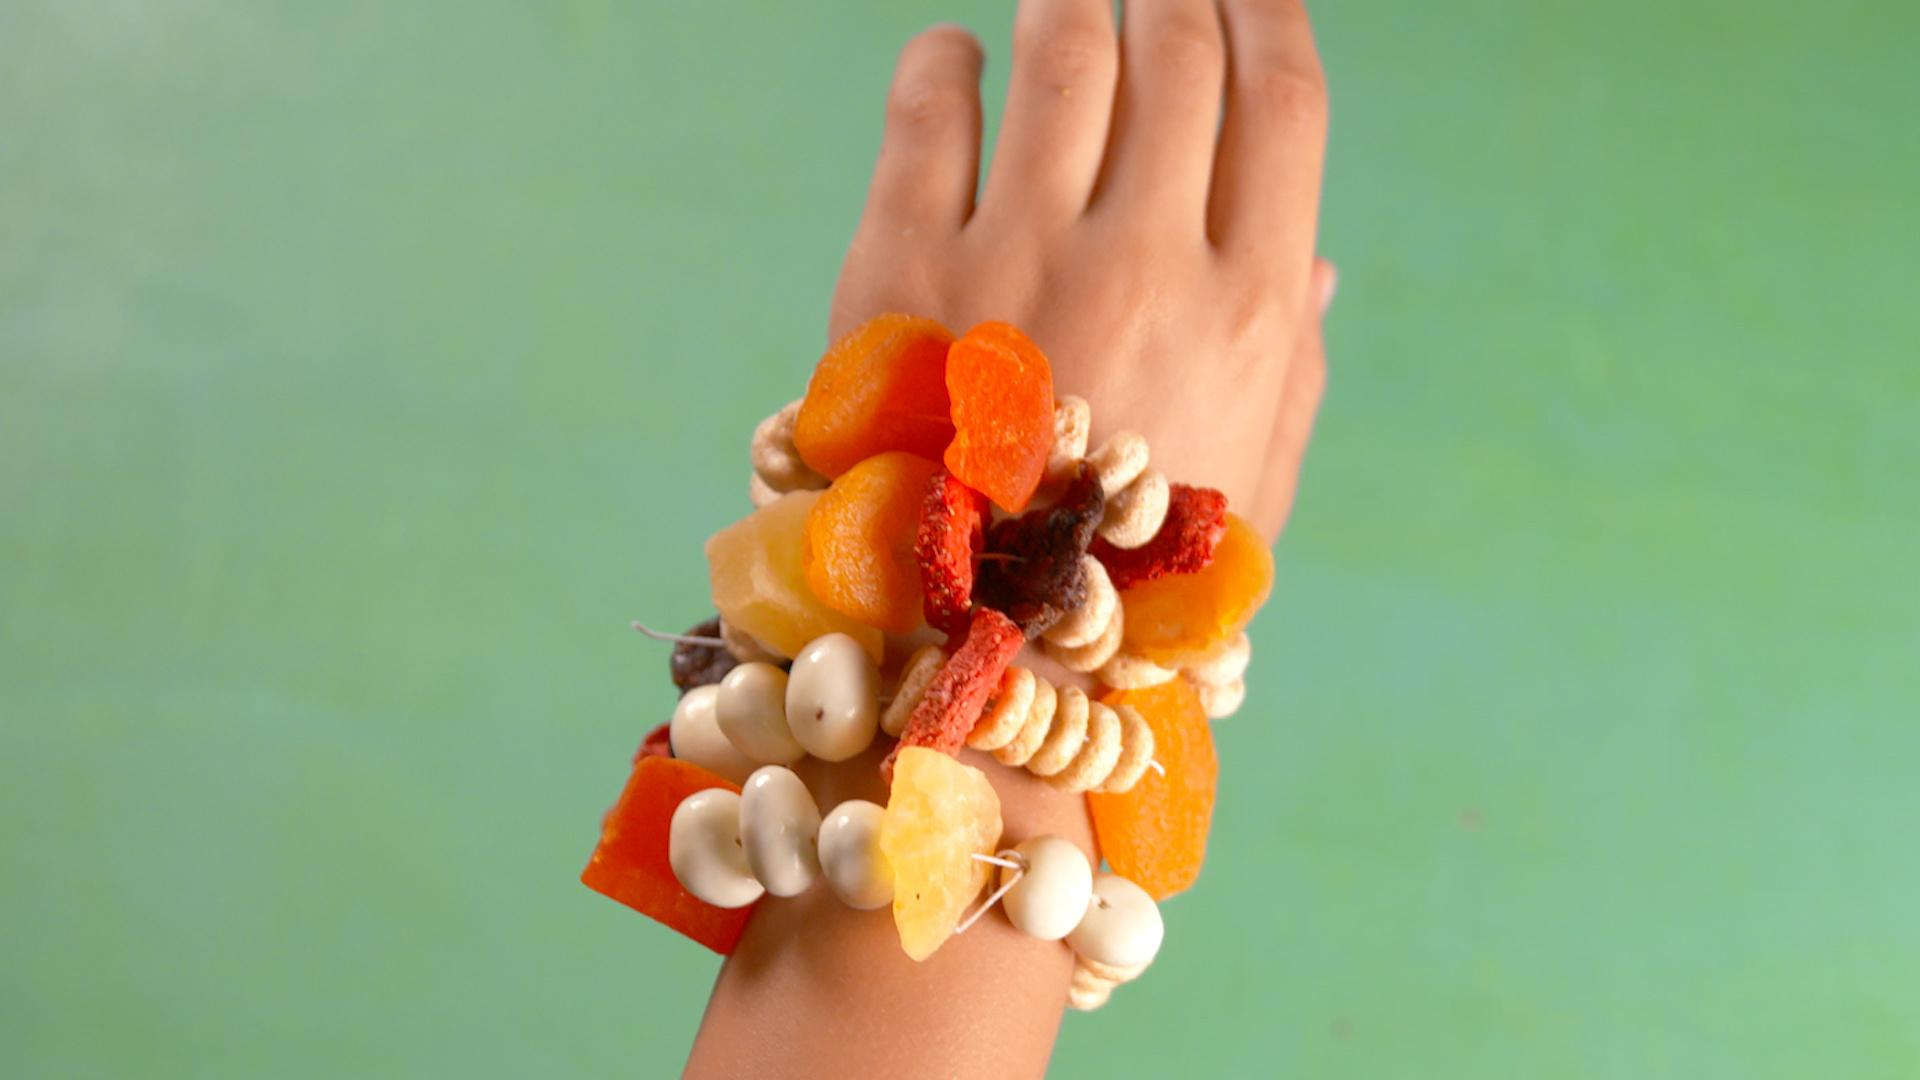 These Snack Bracelets Are The Healthiest Way To Occupy Your Kids